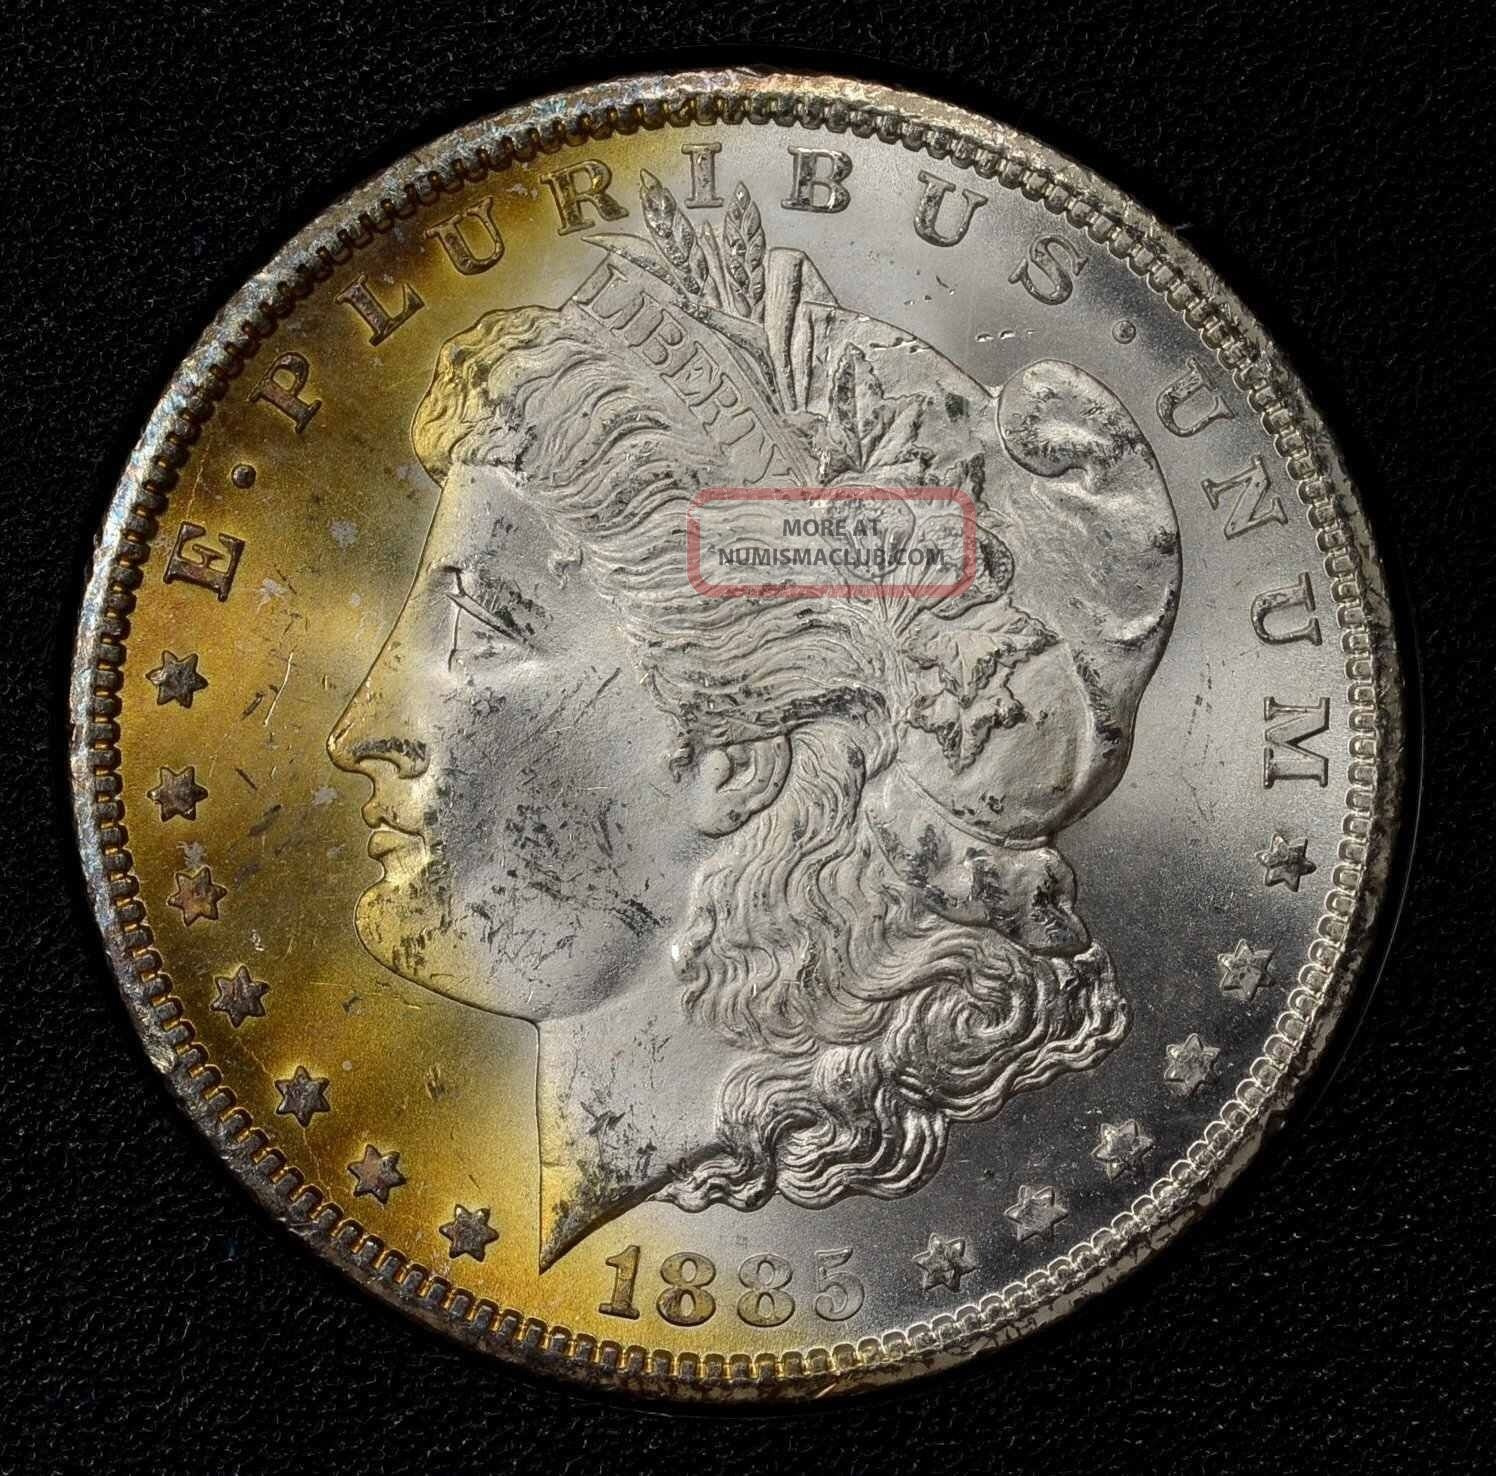 1885 Cc Gsa Morgan Silver Dollar 1 Ngc Ms64 Box